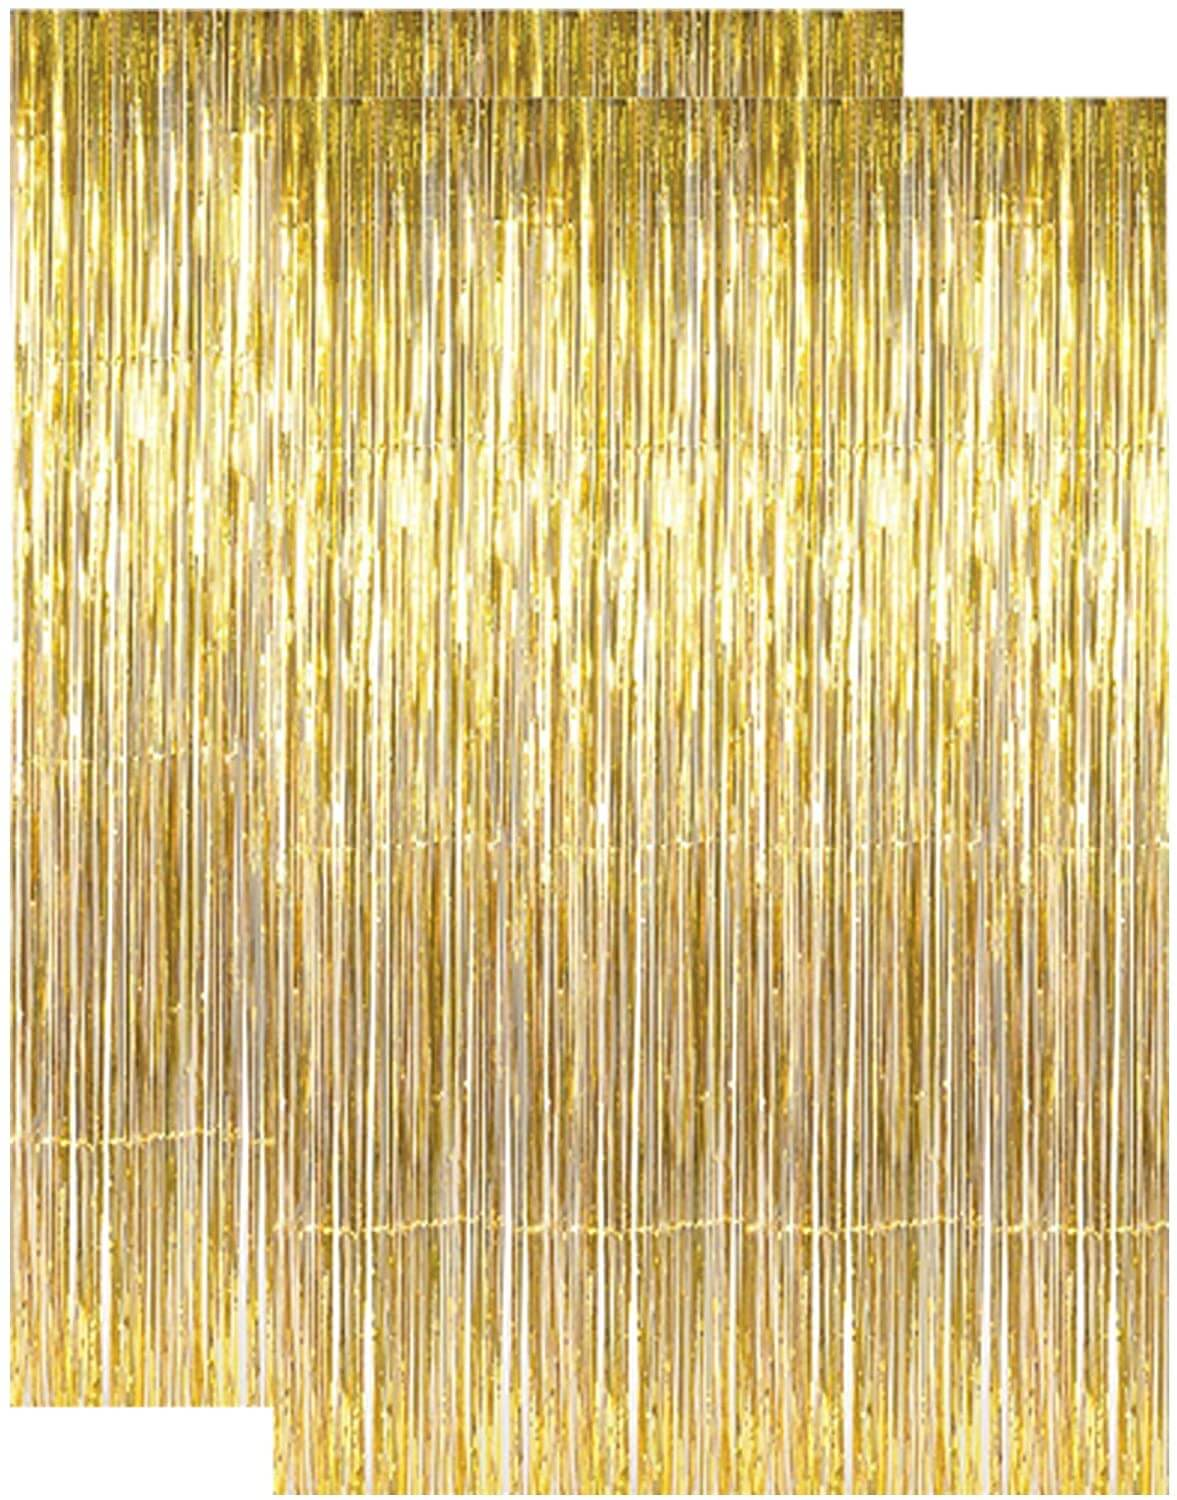 Gold Metallic Tinsel Foil Fringe Curtains